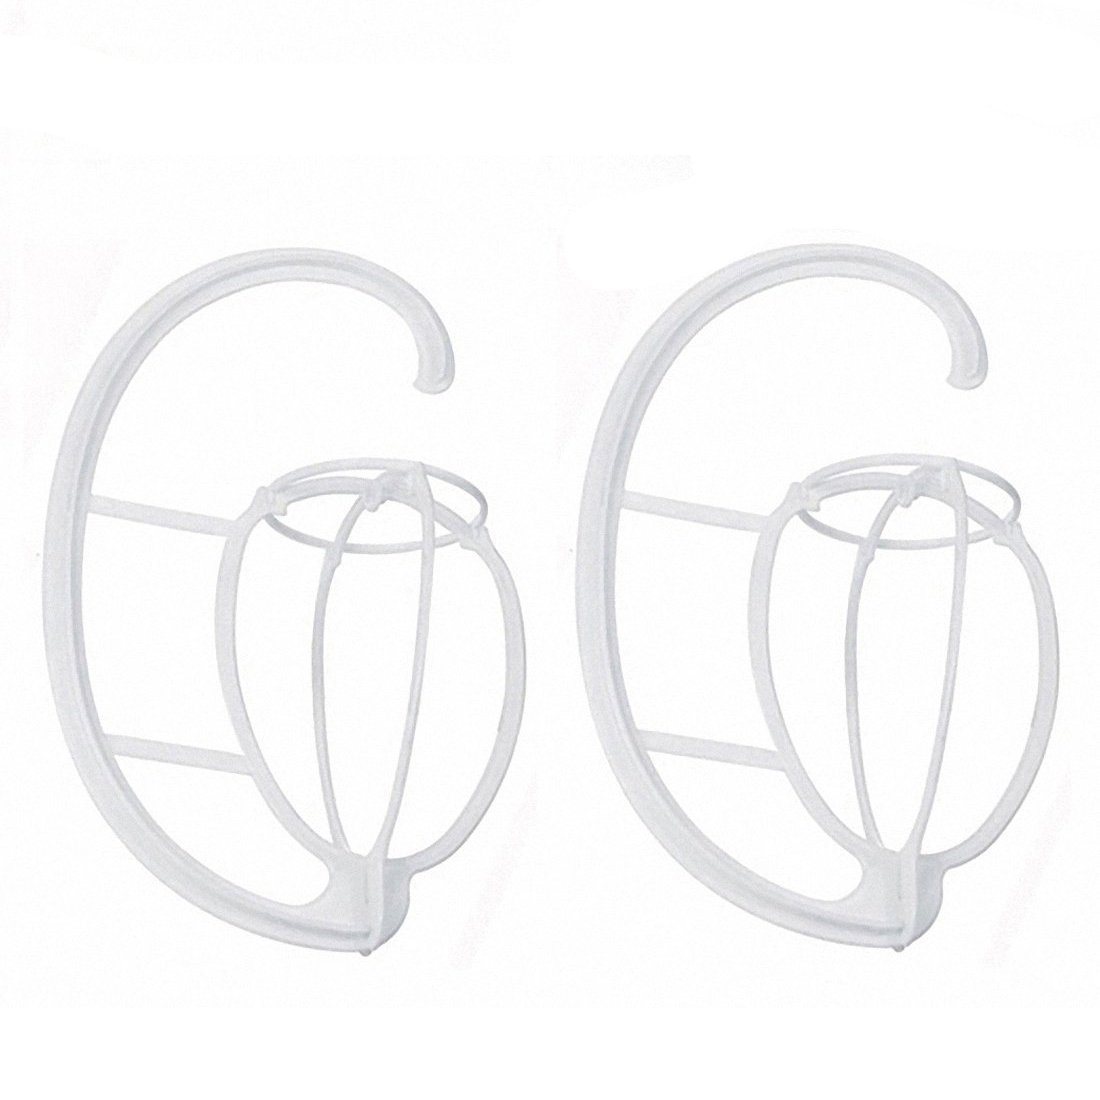 2 Pack Folding Wig Hanger Portable Plastic Store Wig Hanging Stand Rack Wig Dryer Holder Display Tool for Wigs and Hats White (White)